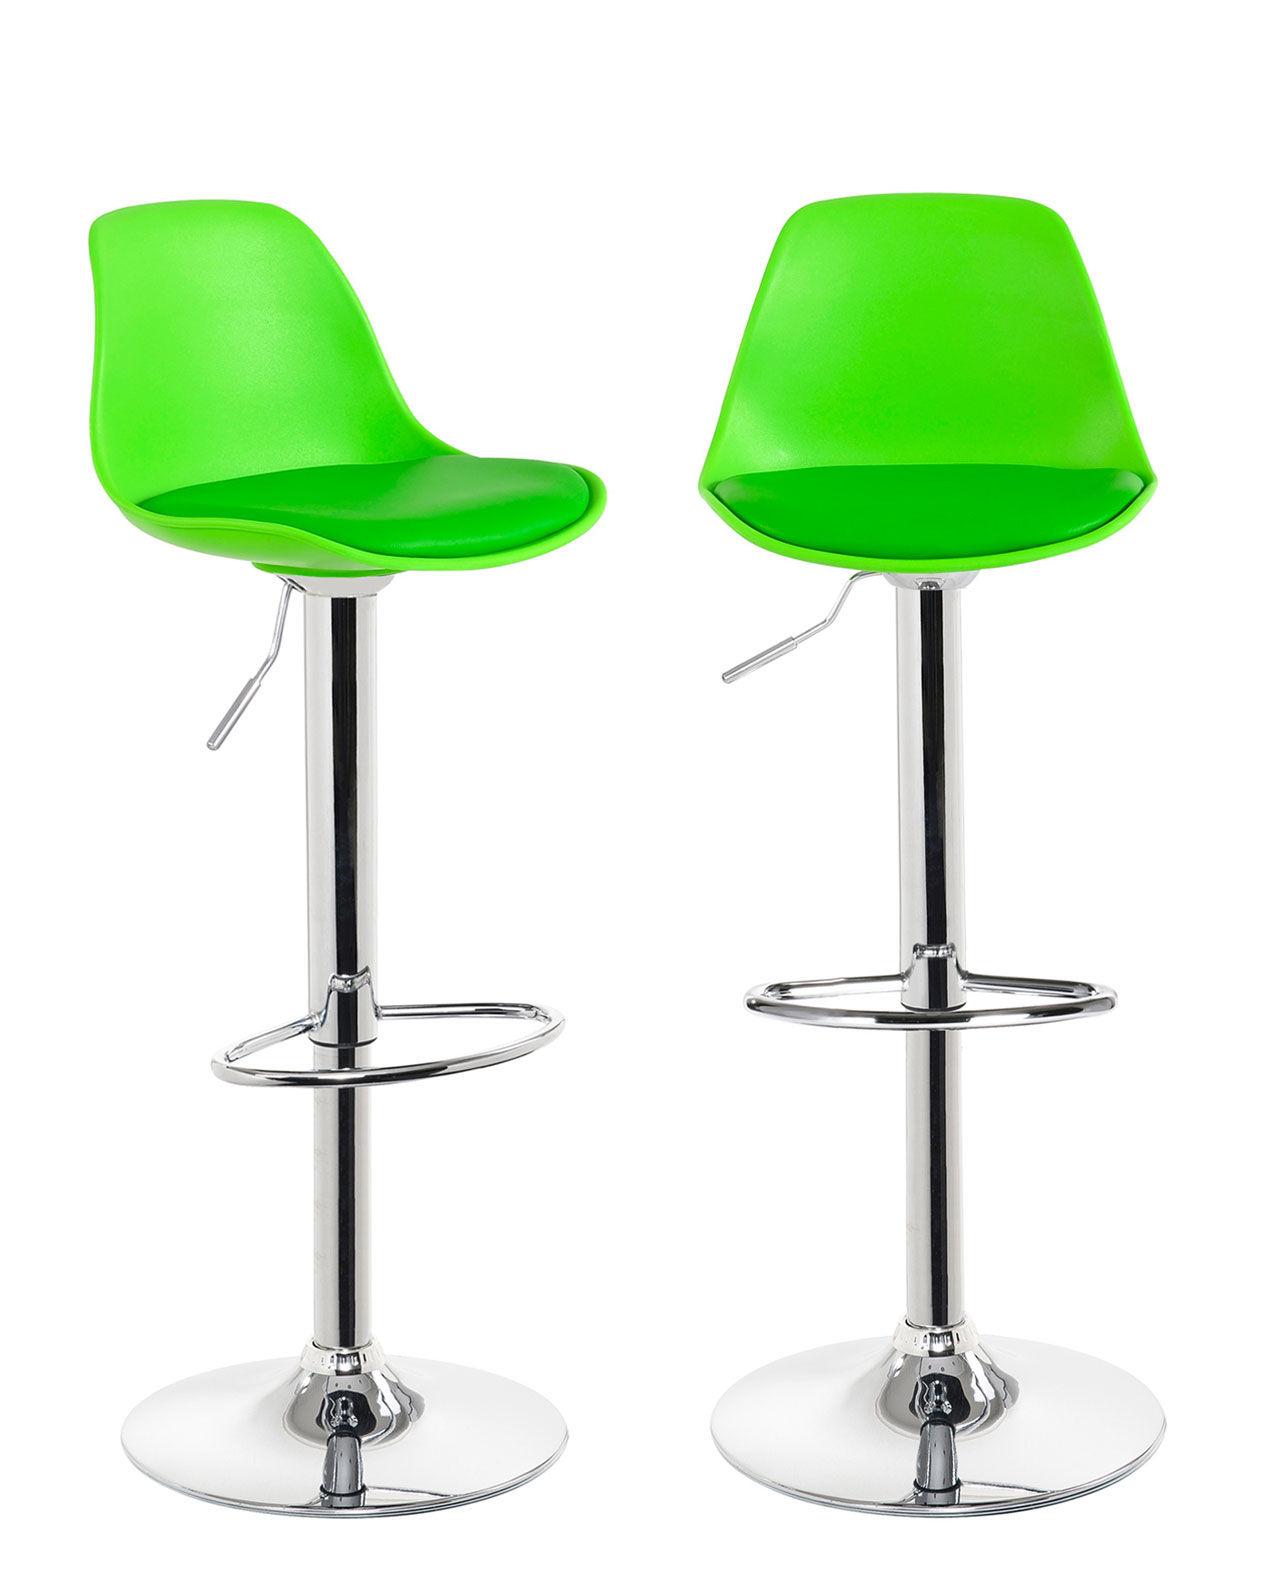 lot de 2 tabourets de bar cuisine sig vert - Tabouret Bar Design